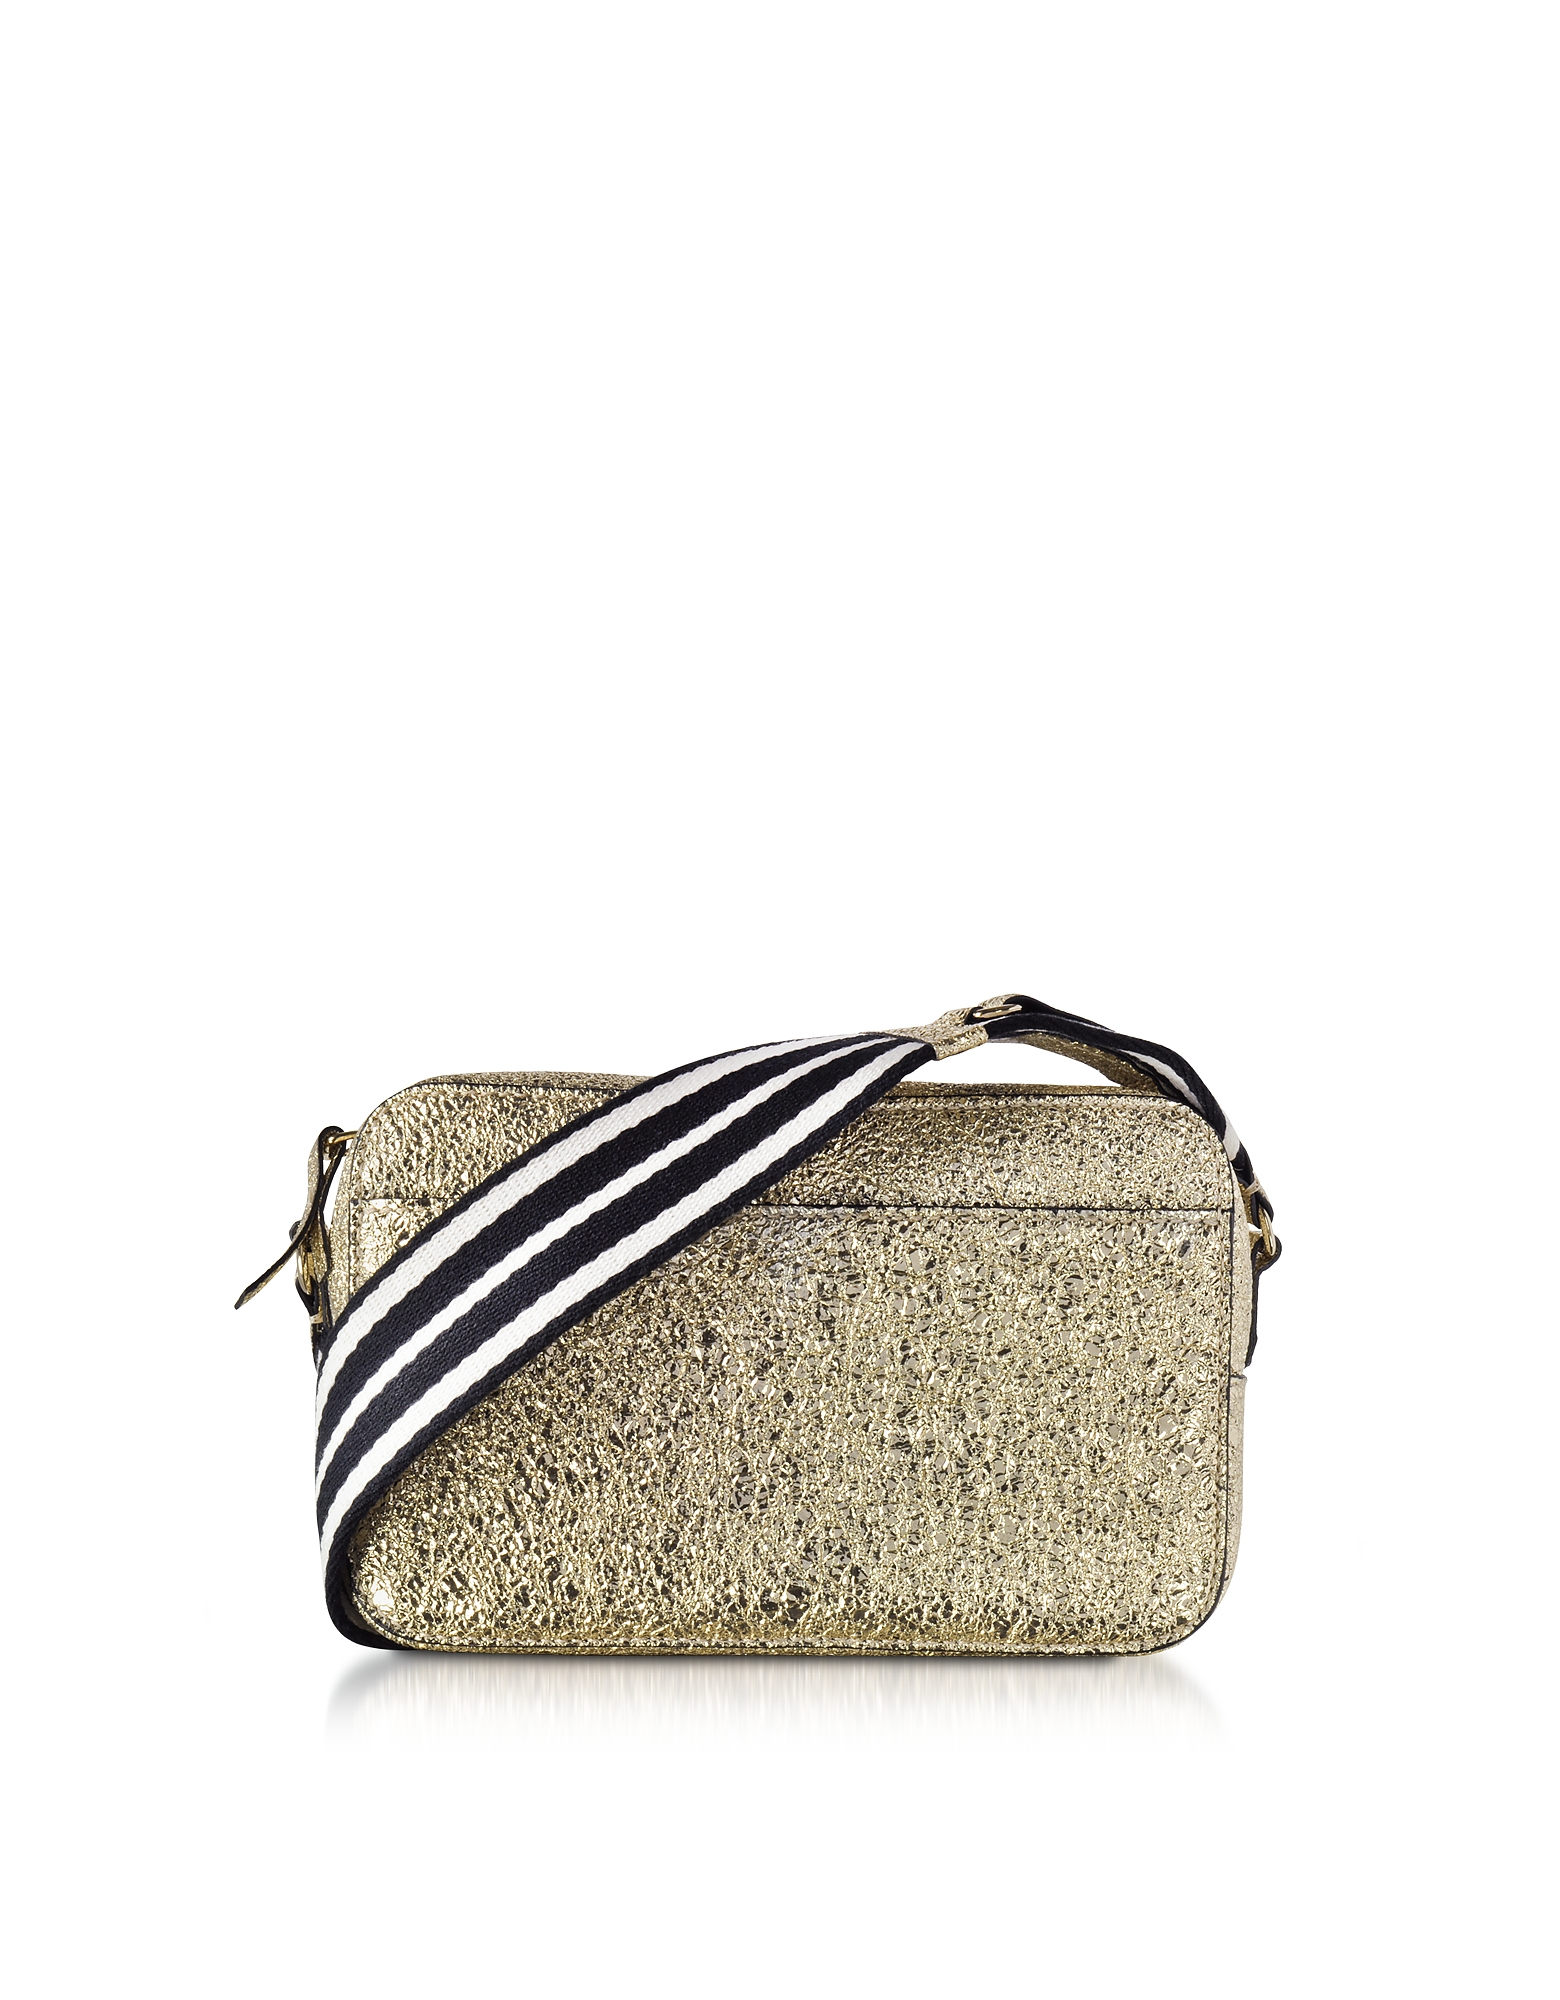 Image of RED Valentino Designer Handbags, Platinum Crackled Metallic Leather Crossbody Bag w/Striped Canvas Strap